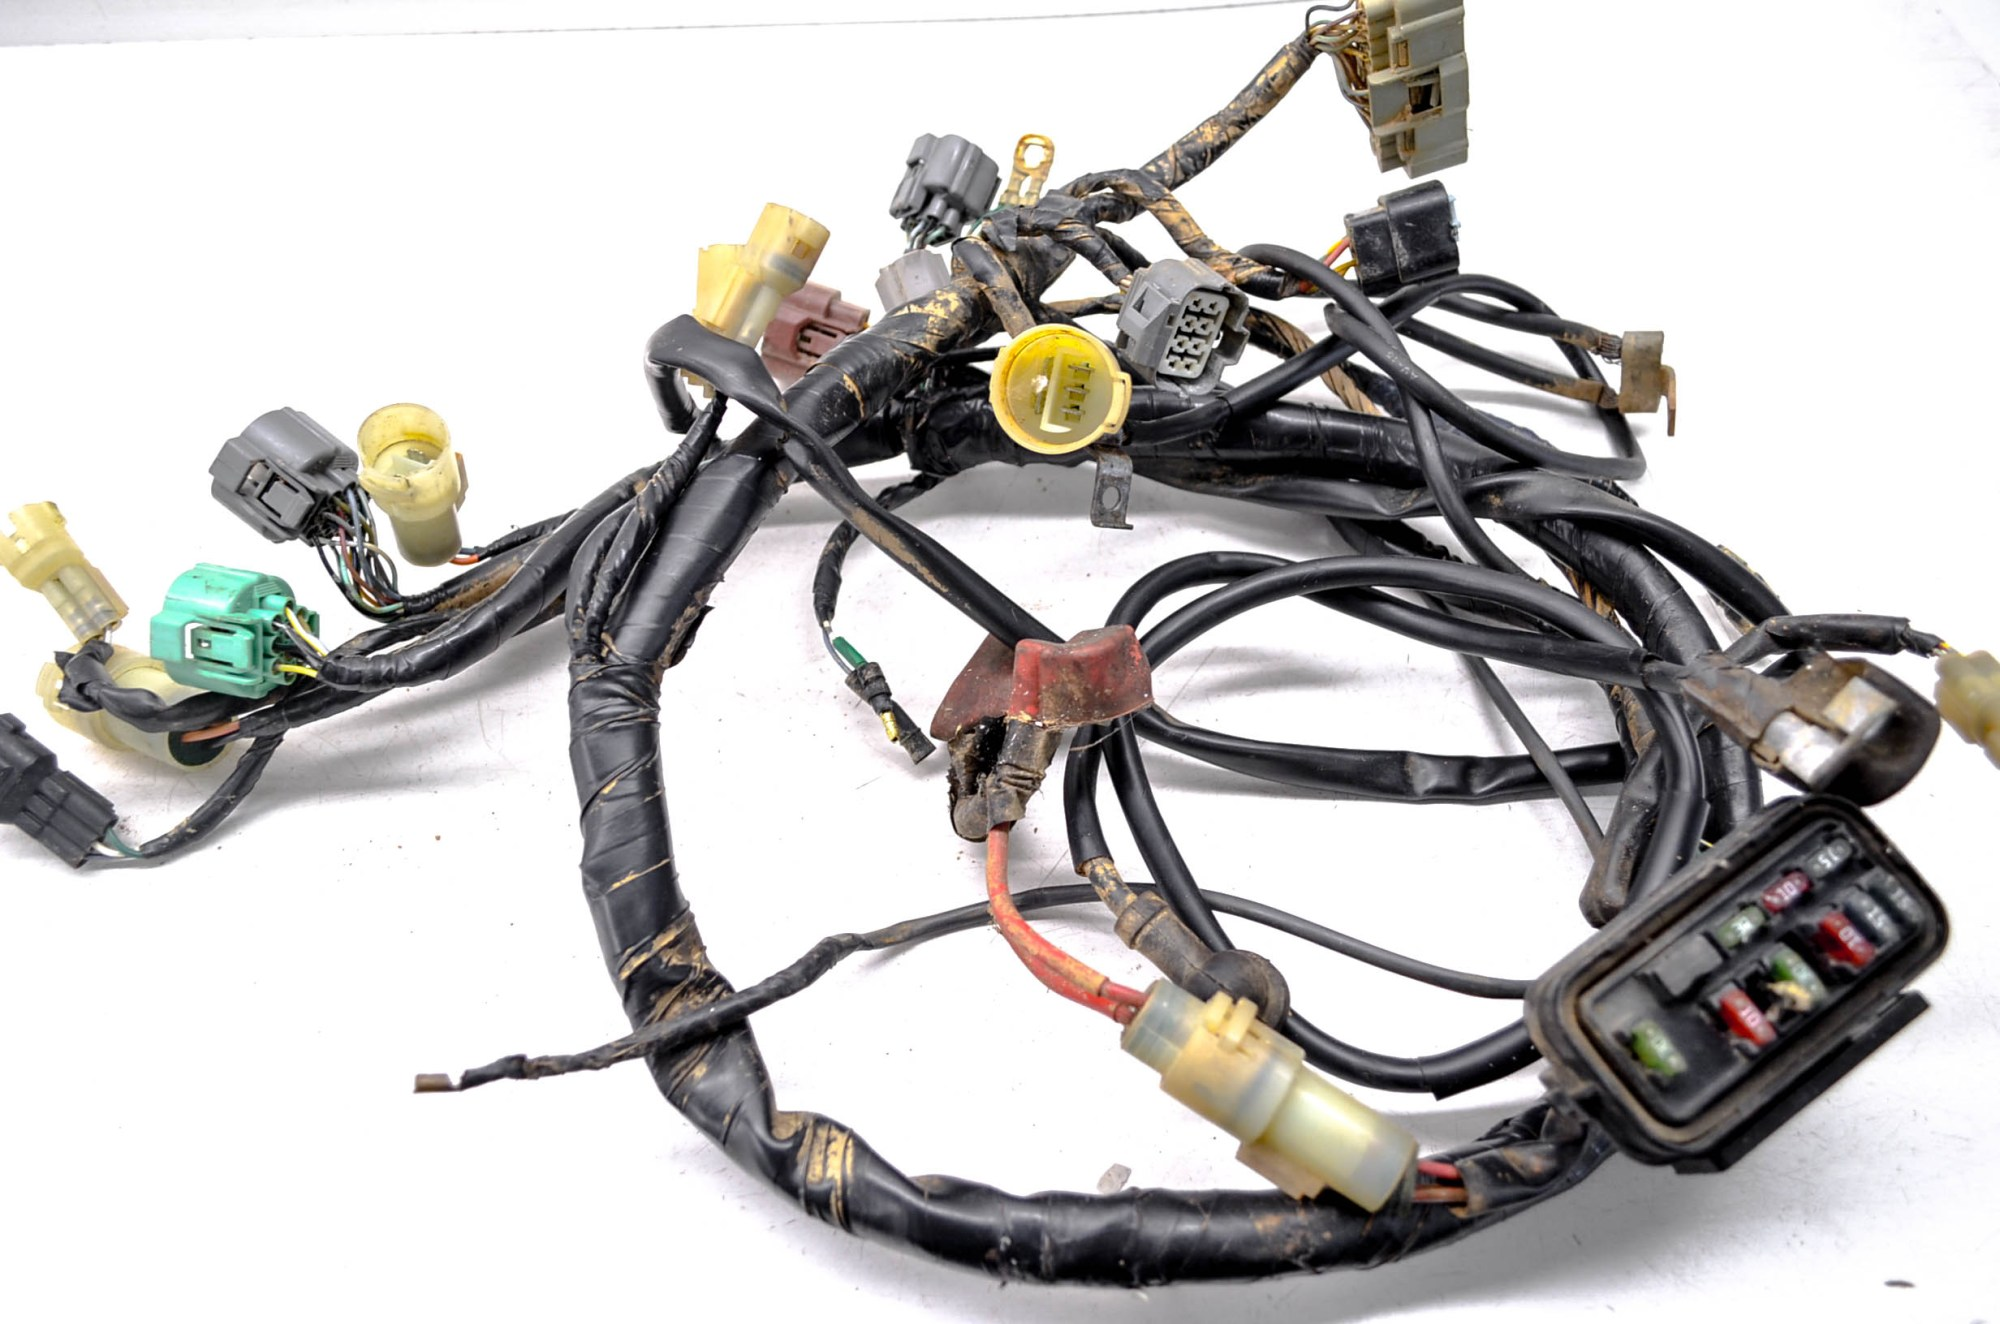 hight resolution of 01 honda rancher 350 2x4 wire harness electrical wiring trx350te 2008 honda rancher wiring harness honda rancher wiring harness